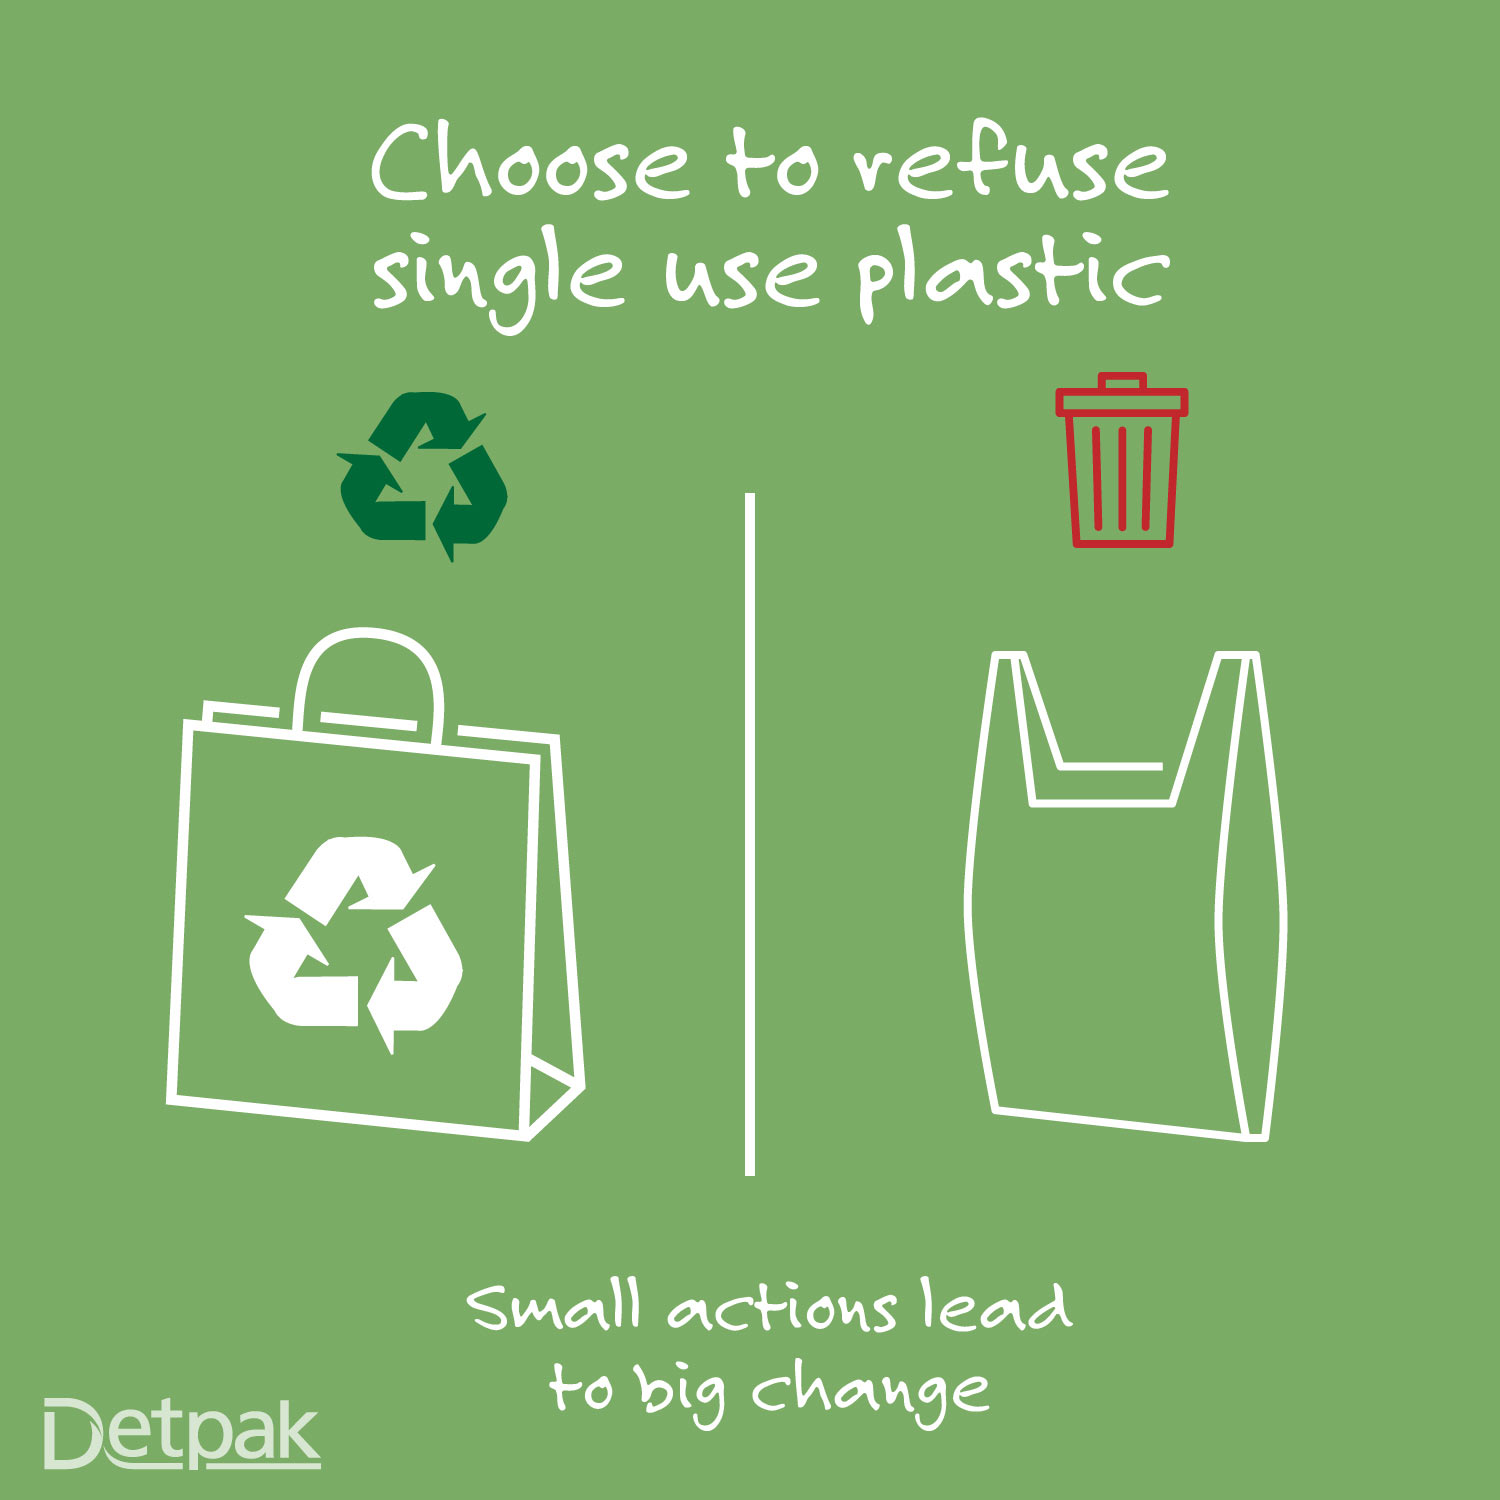 Your small actions lead to big change - choose to refuse single use plastic bags and choose a sustainable paper alternative